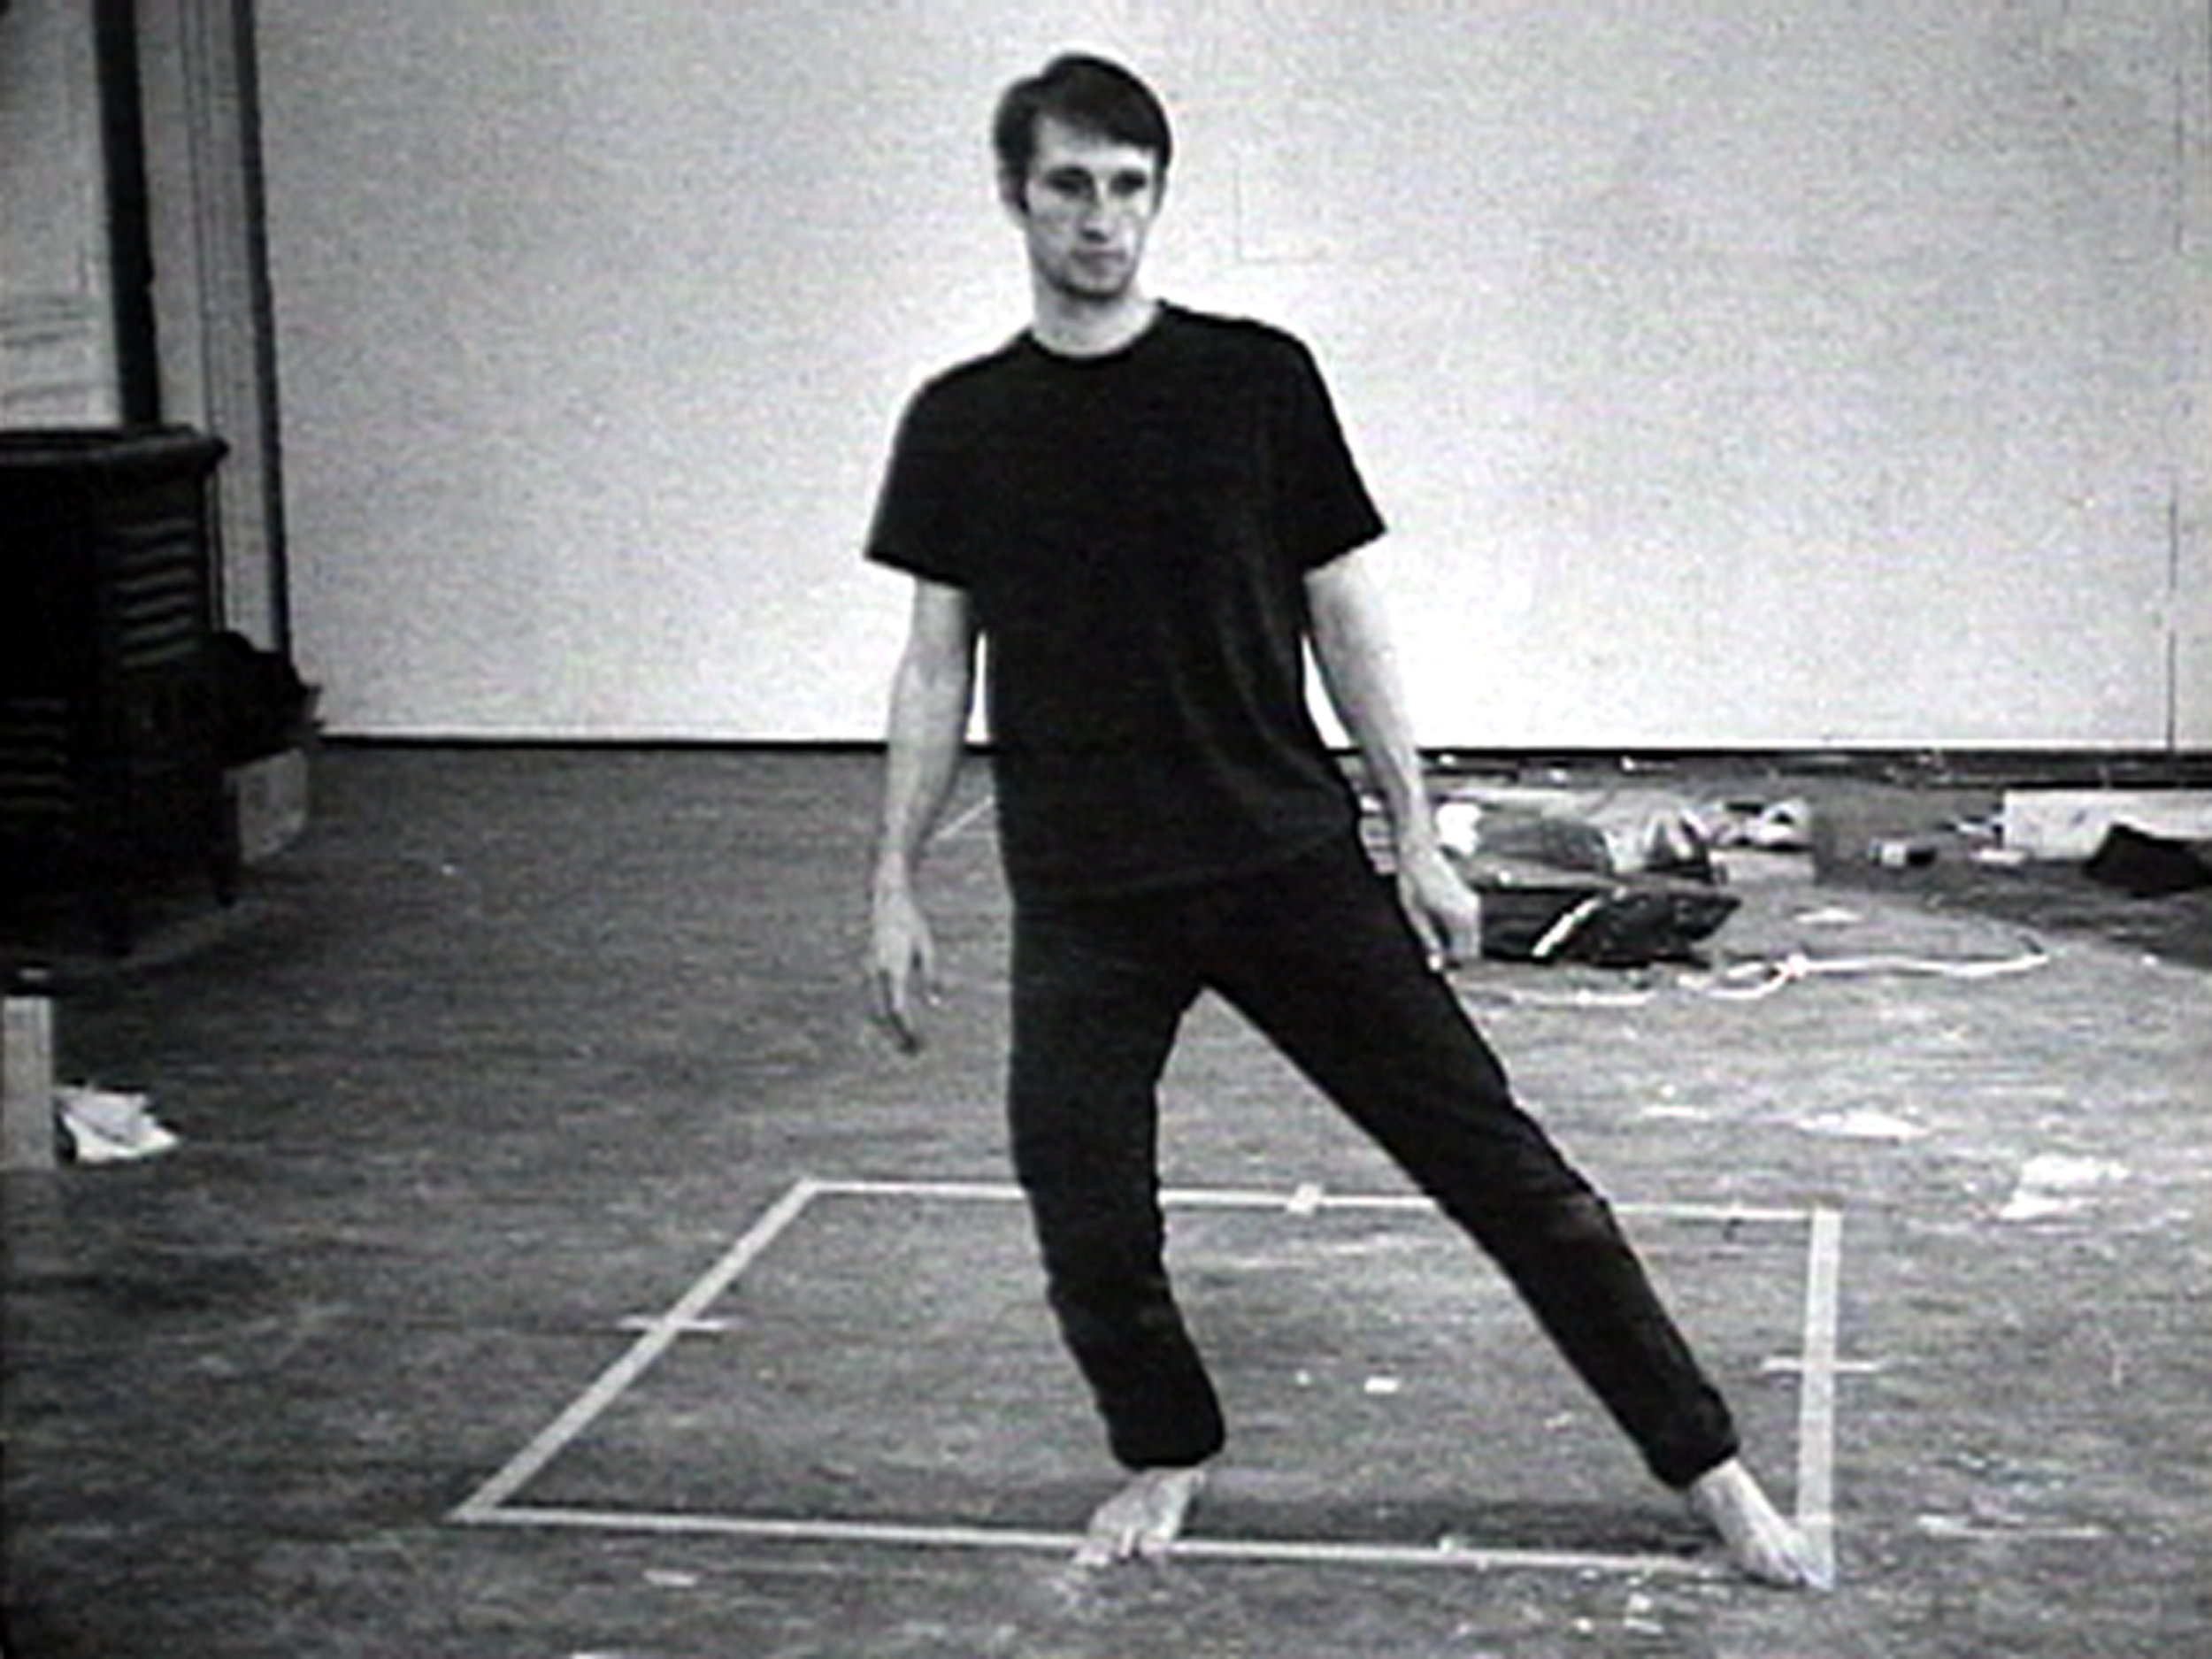 Bruce Nauman,  Dance or Exercise on the Perimeter of a Square (Square Dance) , 1967-68. Courtesy Electronic Arts Intermix (EAI), New York. [Image Description: A black and white image of a man standing in the center of a room, facing outwards, wearing a black t-shirt and black pants. On the floor is a taped outline of a square. The man stands on one edge of the square, and stretches one leg out to the corner, touching it with his toes.]